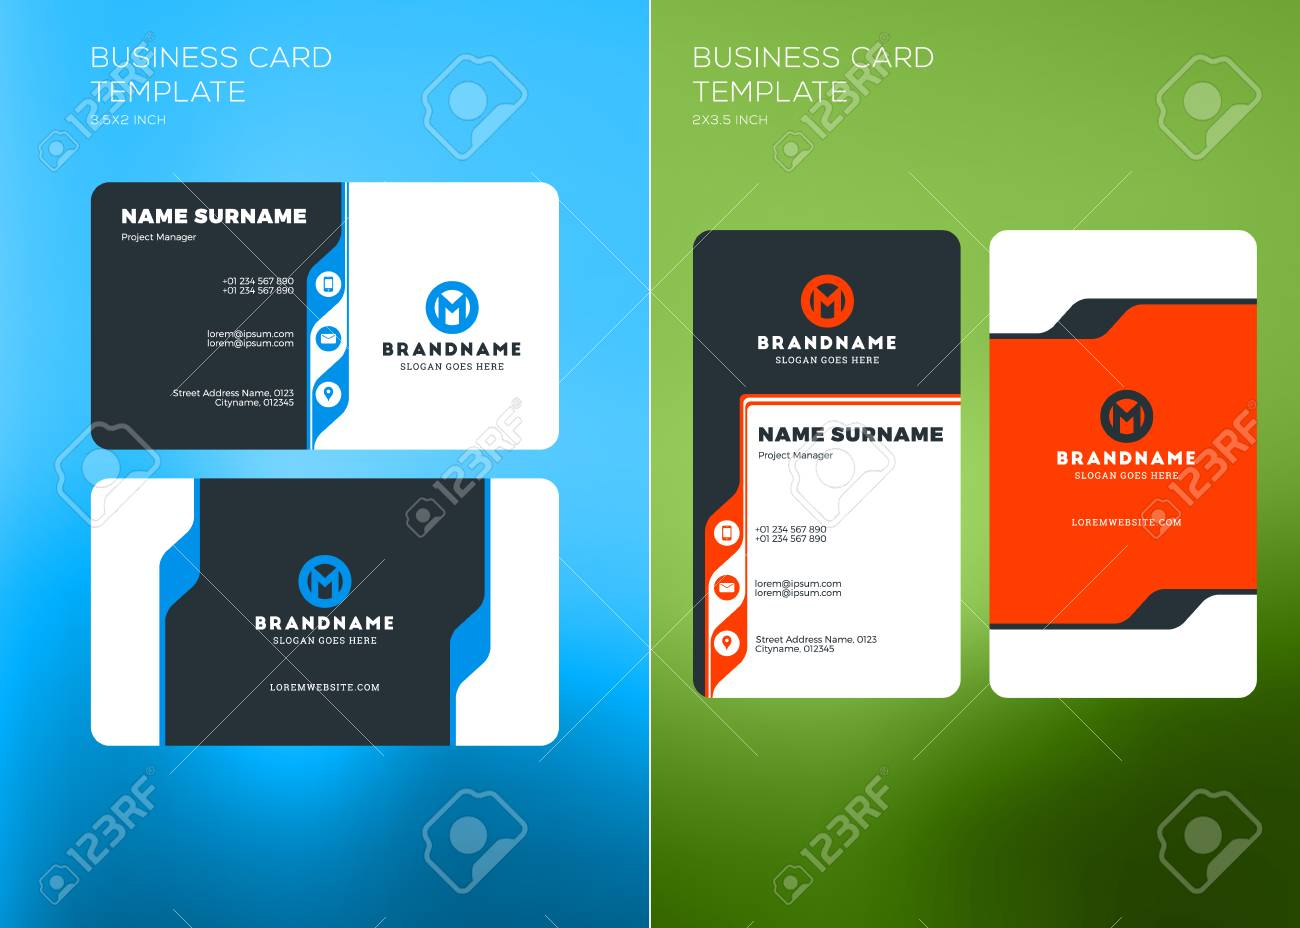 Corporate business card print template vertical and horizontal corporate business card print template vertical and horizontal business card templates vector illustration flashek Gallery